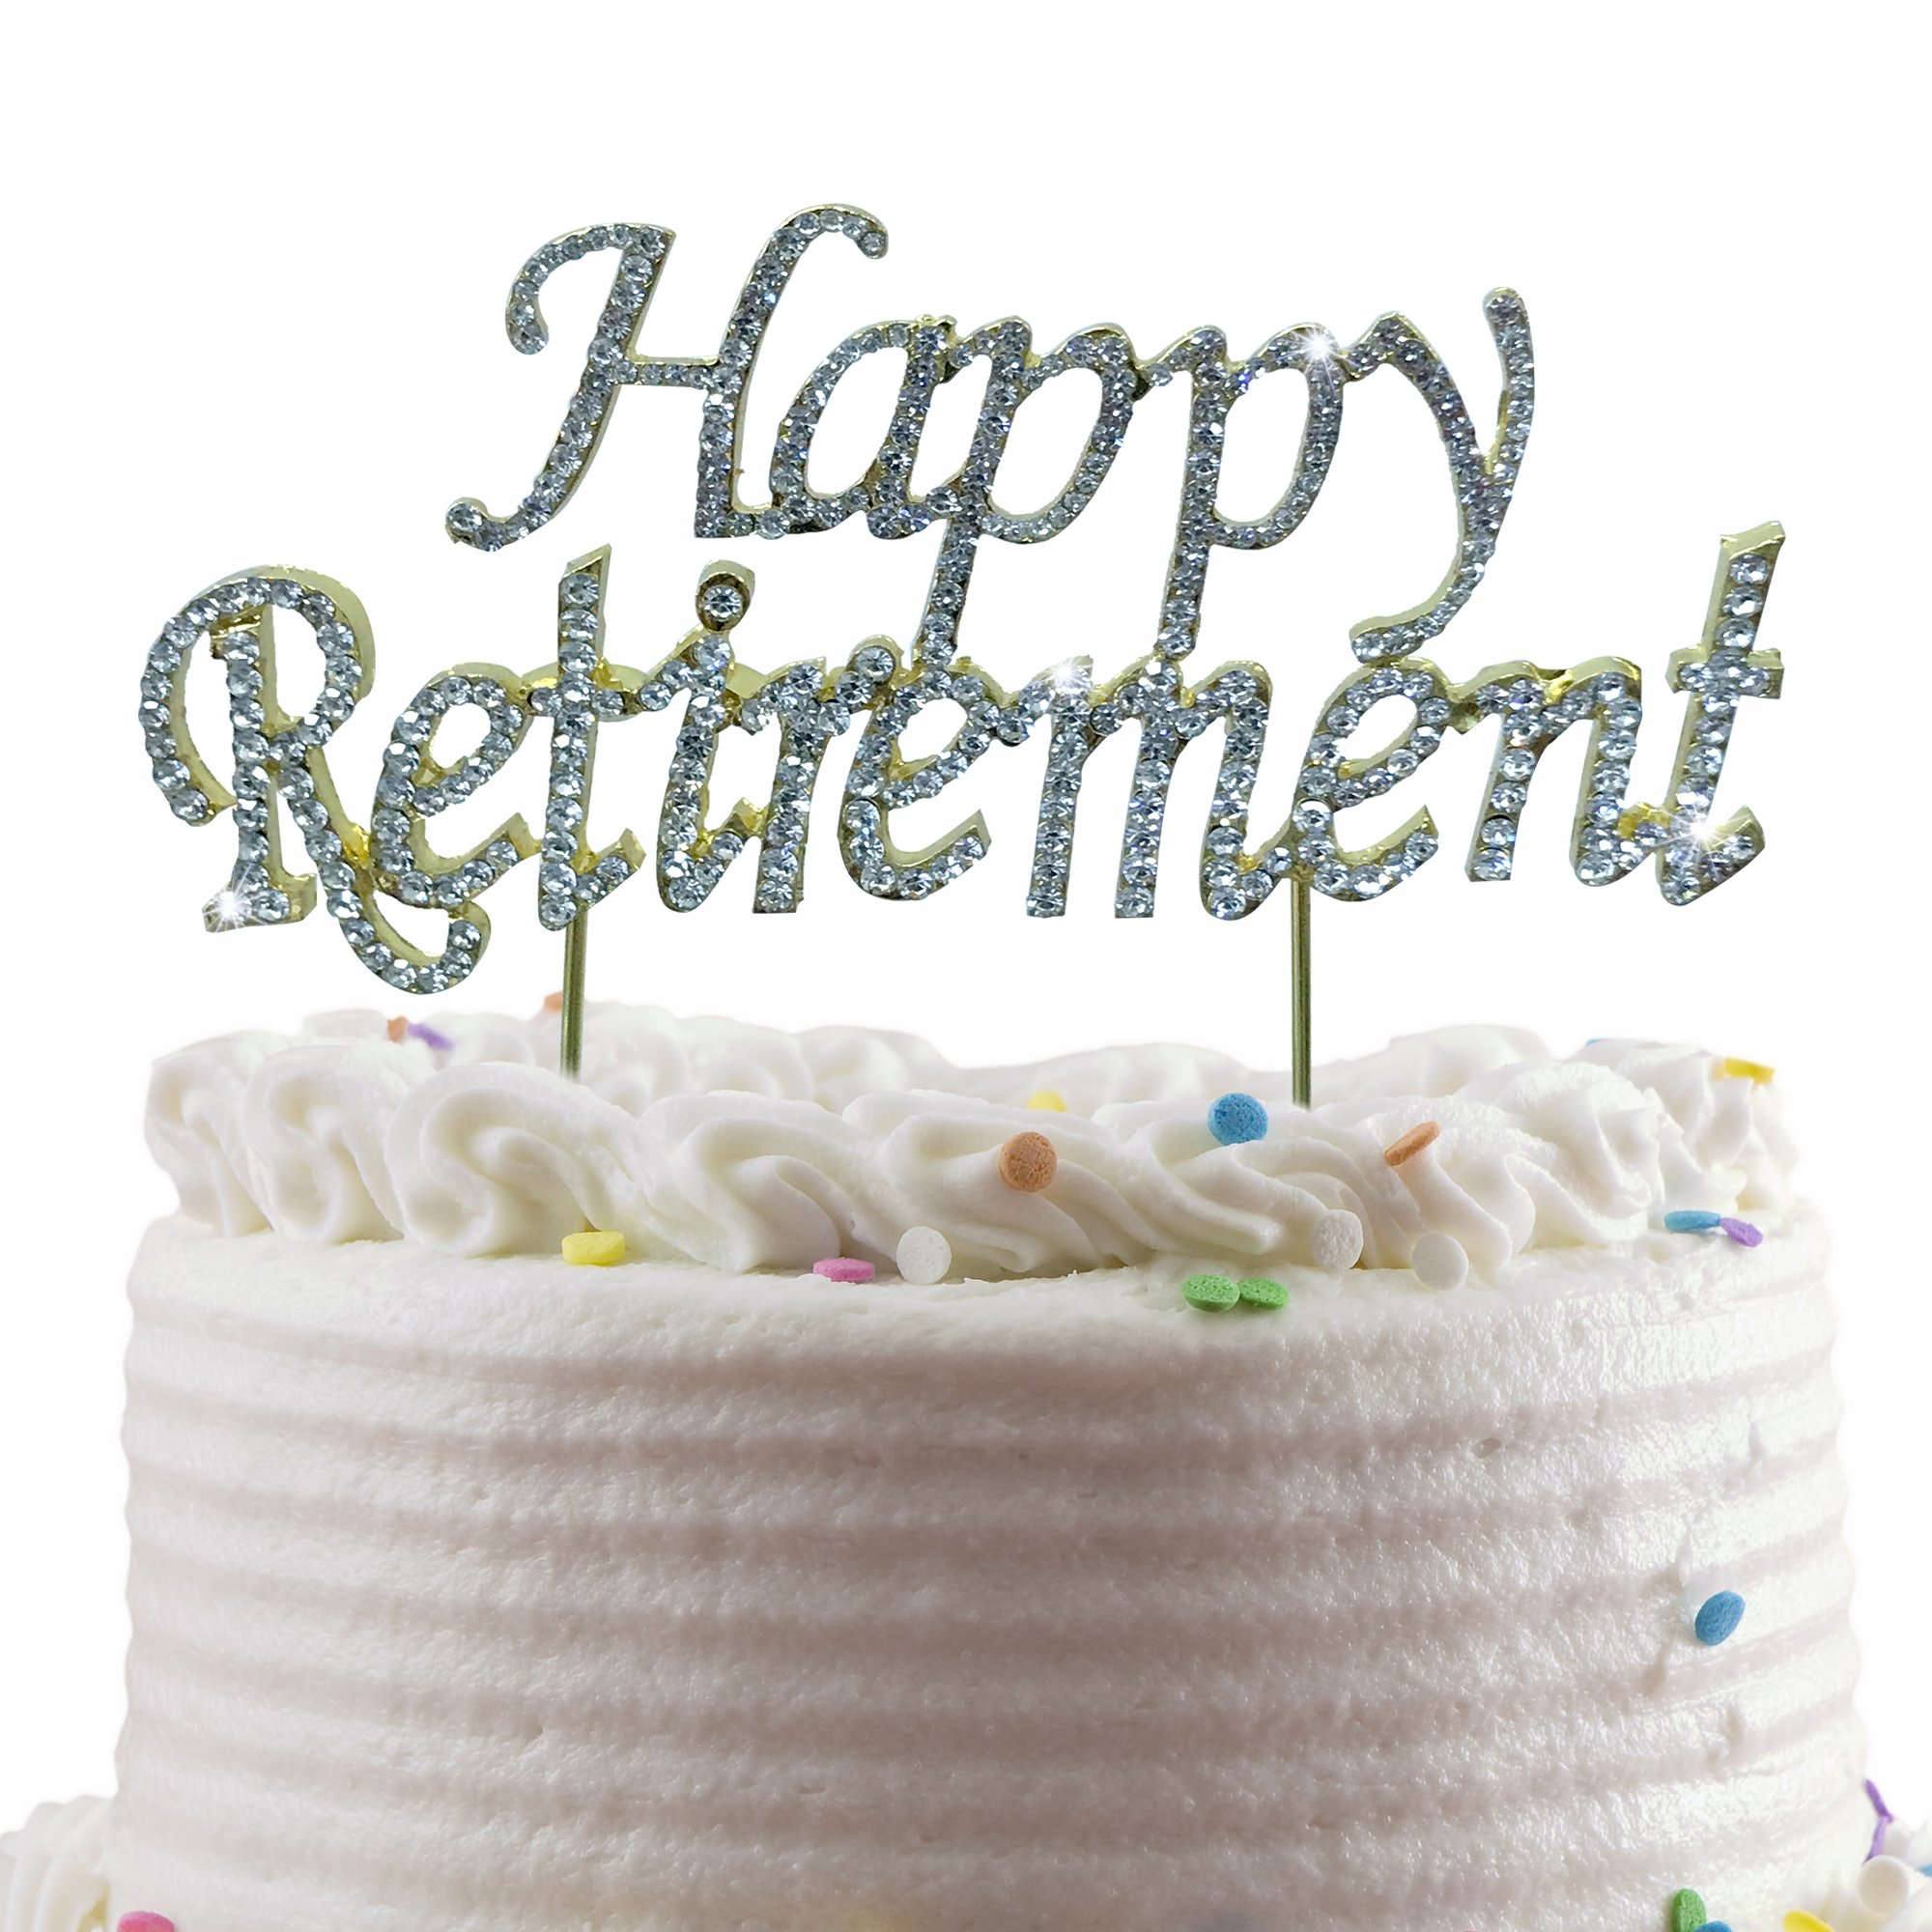 JennyGems Happy Retirement Cake Topper - Sparkling Rhinestones With Gold Trim - Retirement Party Decoration by JennyGems